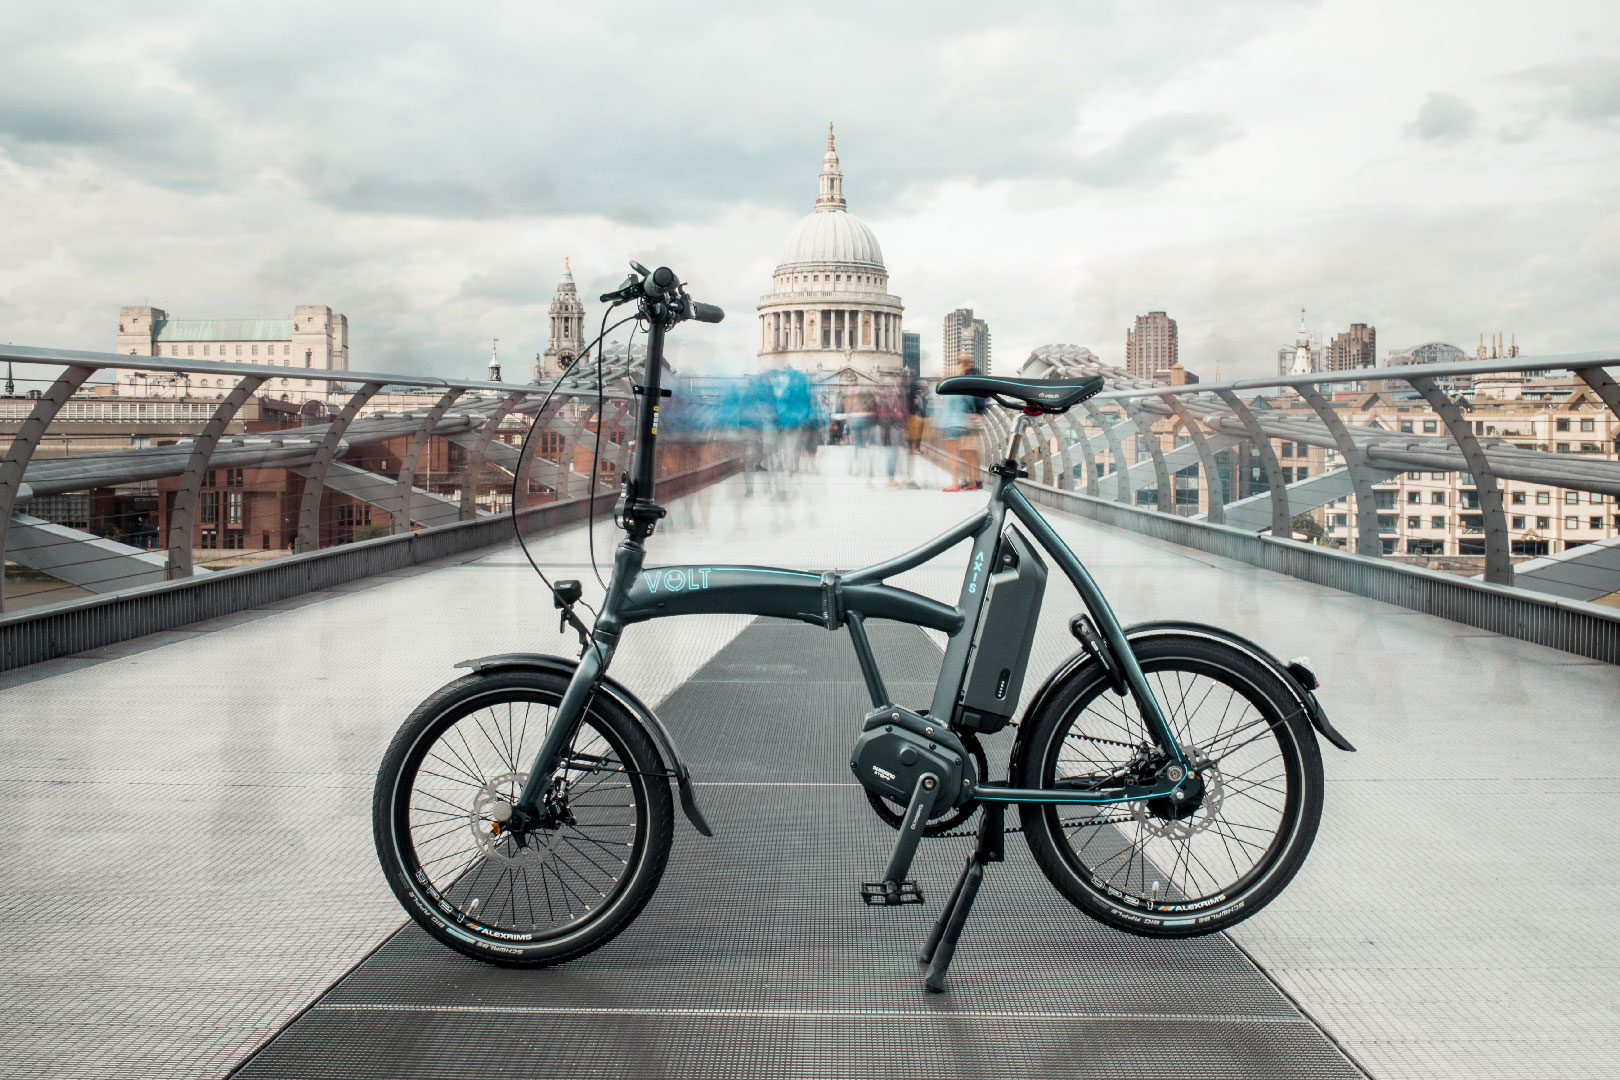 Volt Axis Folding Shimano STEPS ebike looks amazing standing in Millennium Bridge